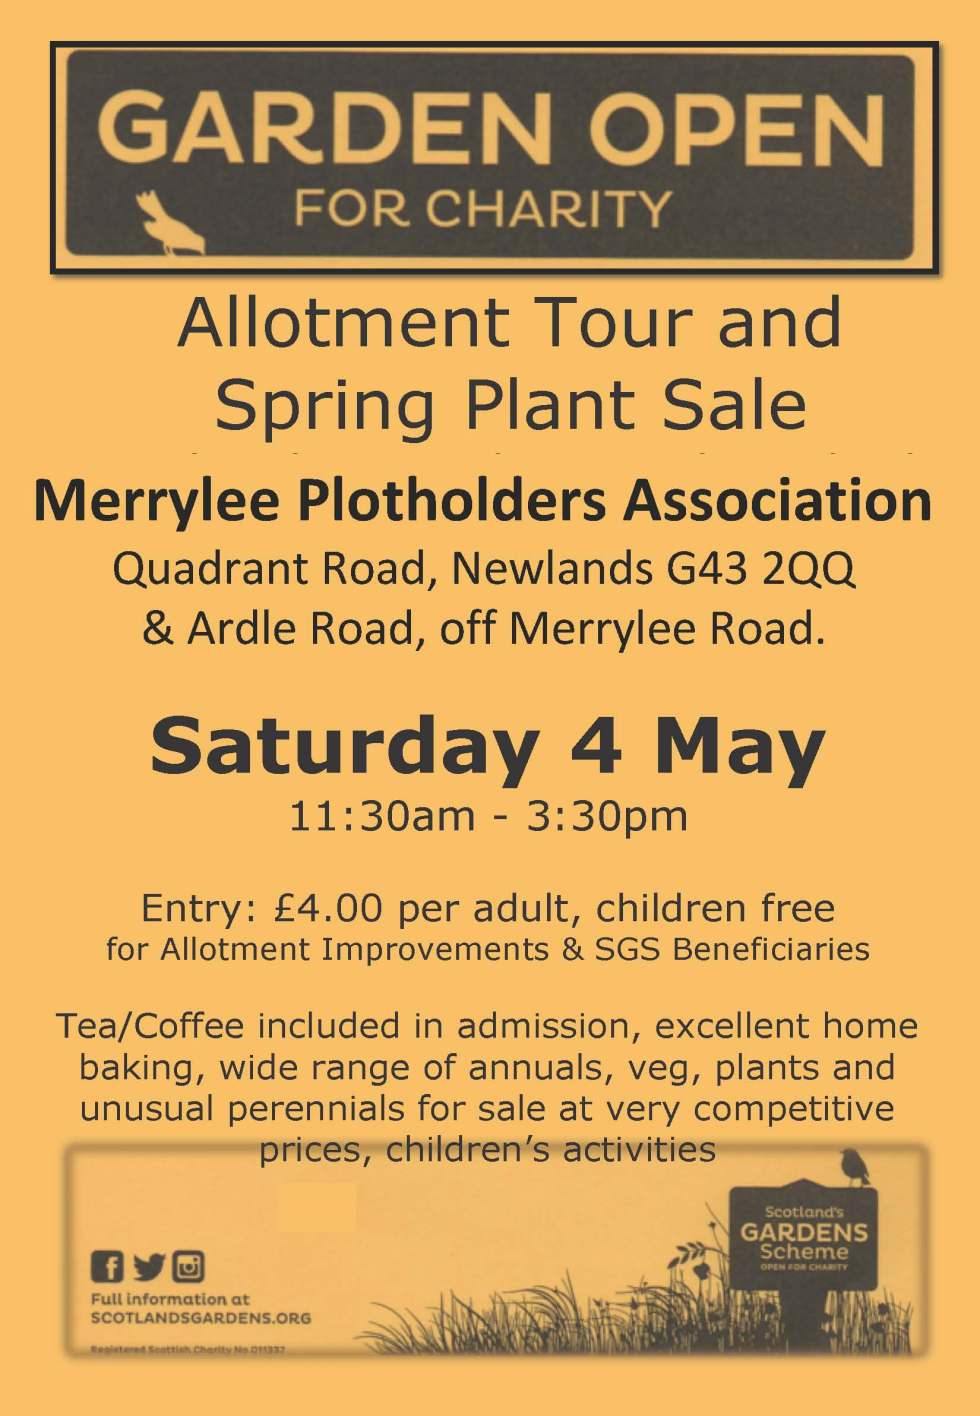 20190417_Plant Sale_Merrylee 4 May 2019.jpg